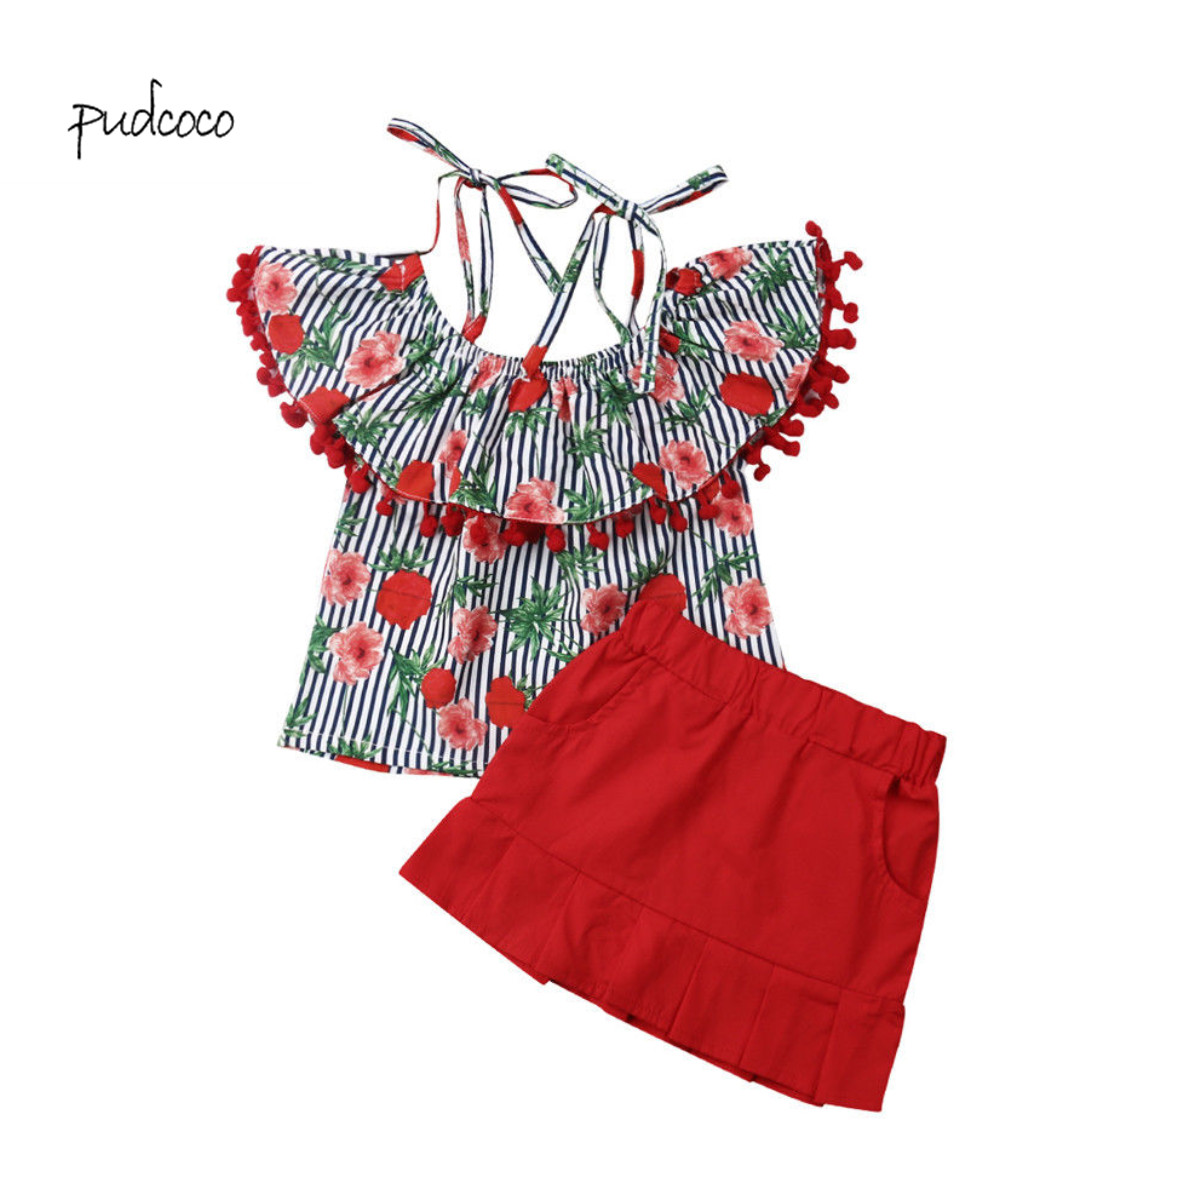 Pudcoco New Brand Kids Baby Girl Lace Tops Flower T-shirt Skirts 2pcs Outfits Set